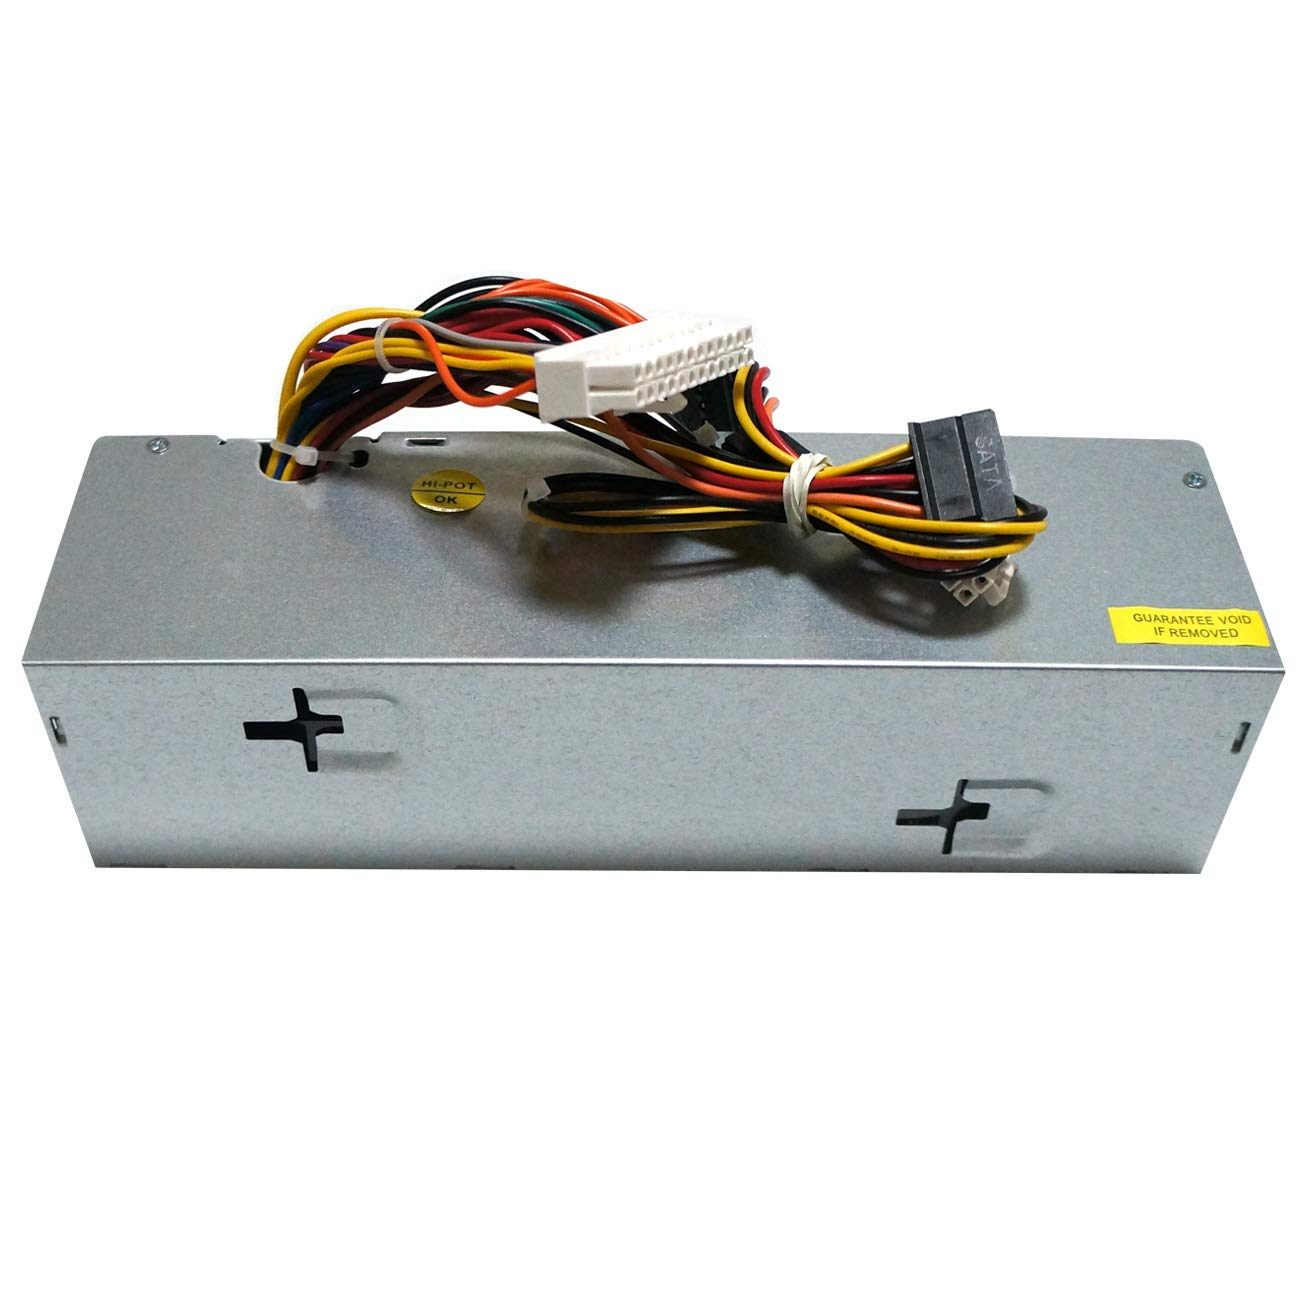 240W for Dell Optiplex 9010 390 D240AS-00 DPS-240WB AC240AS-00 SFF Power Supply